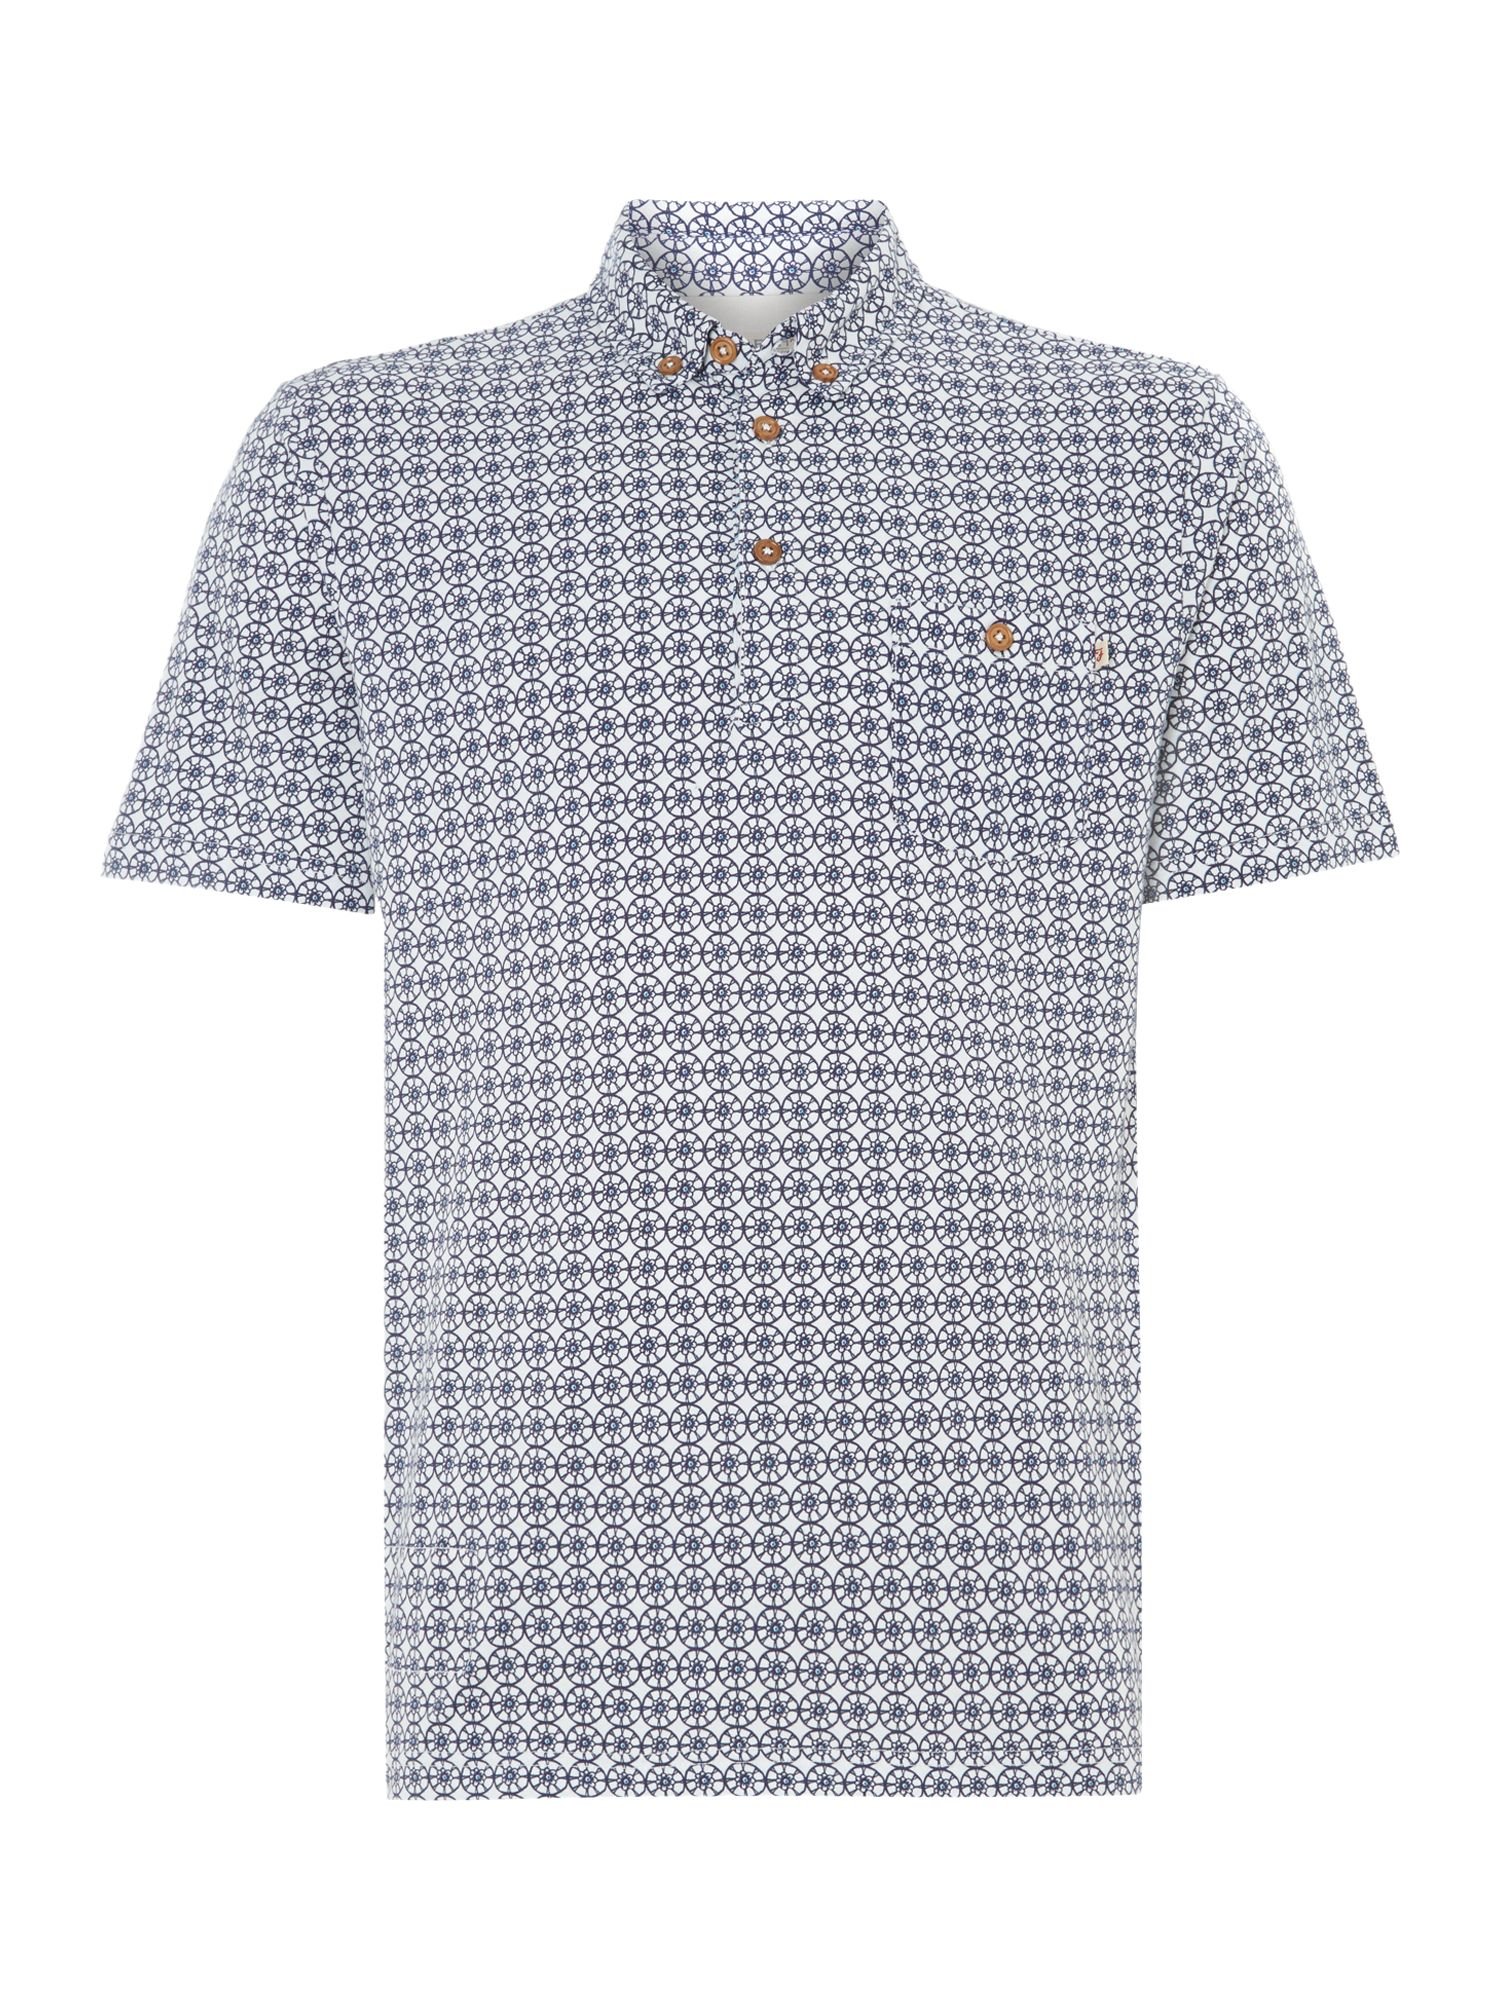 Farnell polo shirt